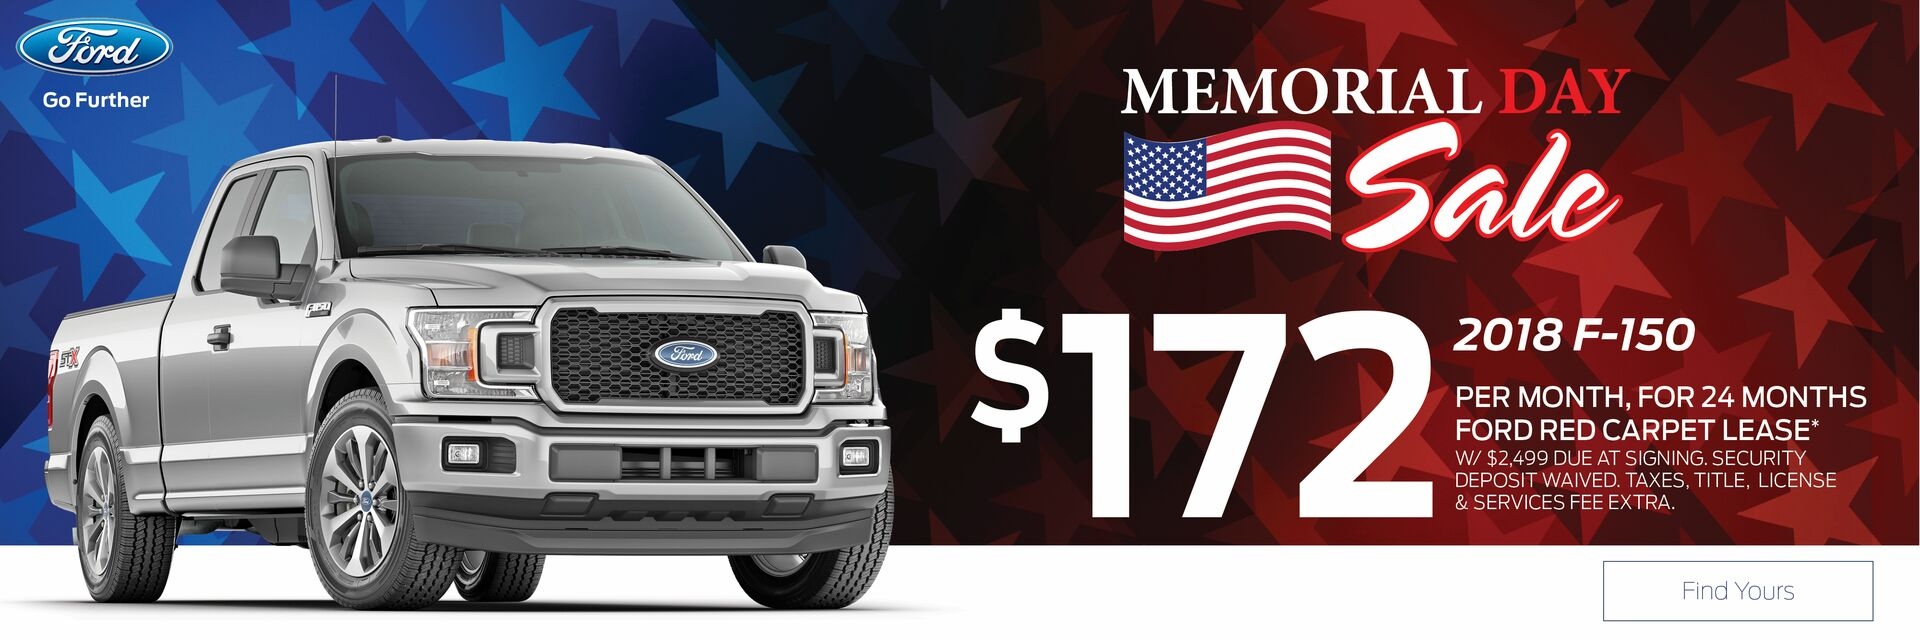 Lease a Ford F-150 at Holiday Ford in Fond du Lac, WI